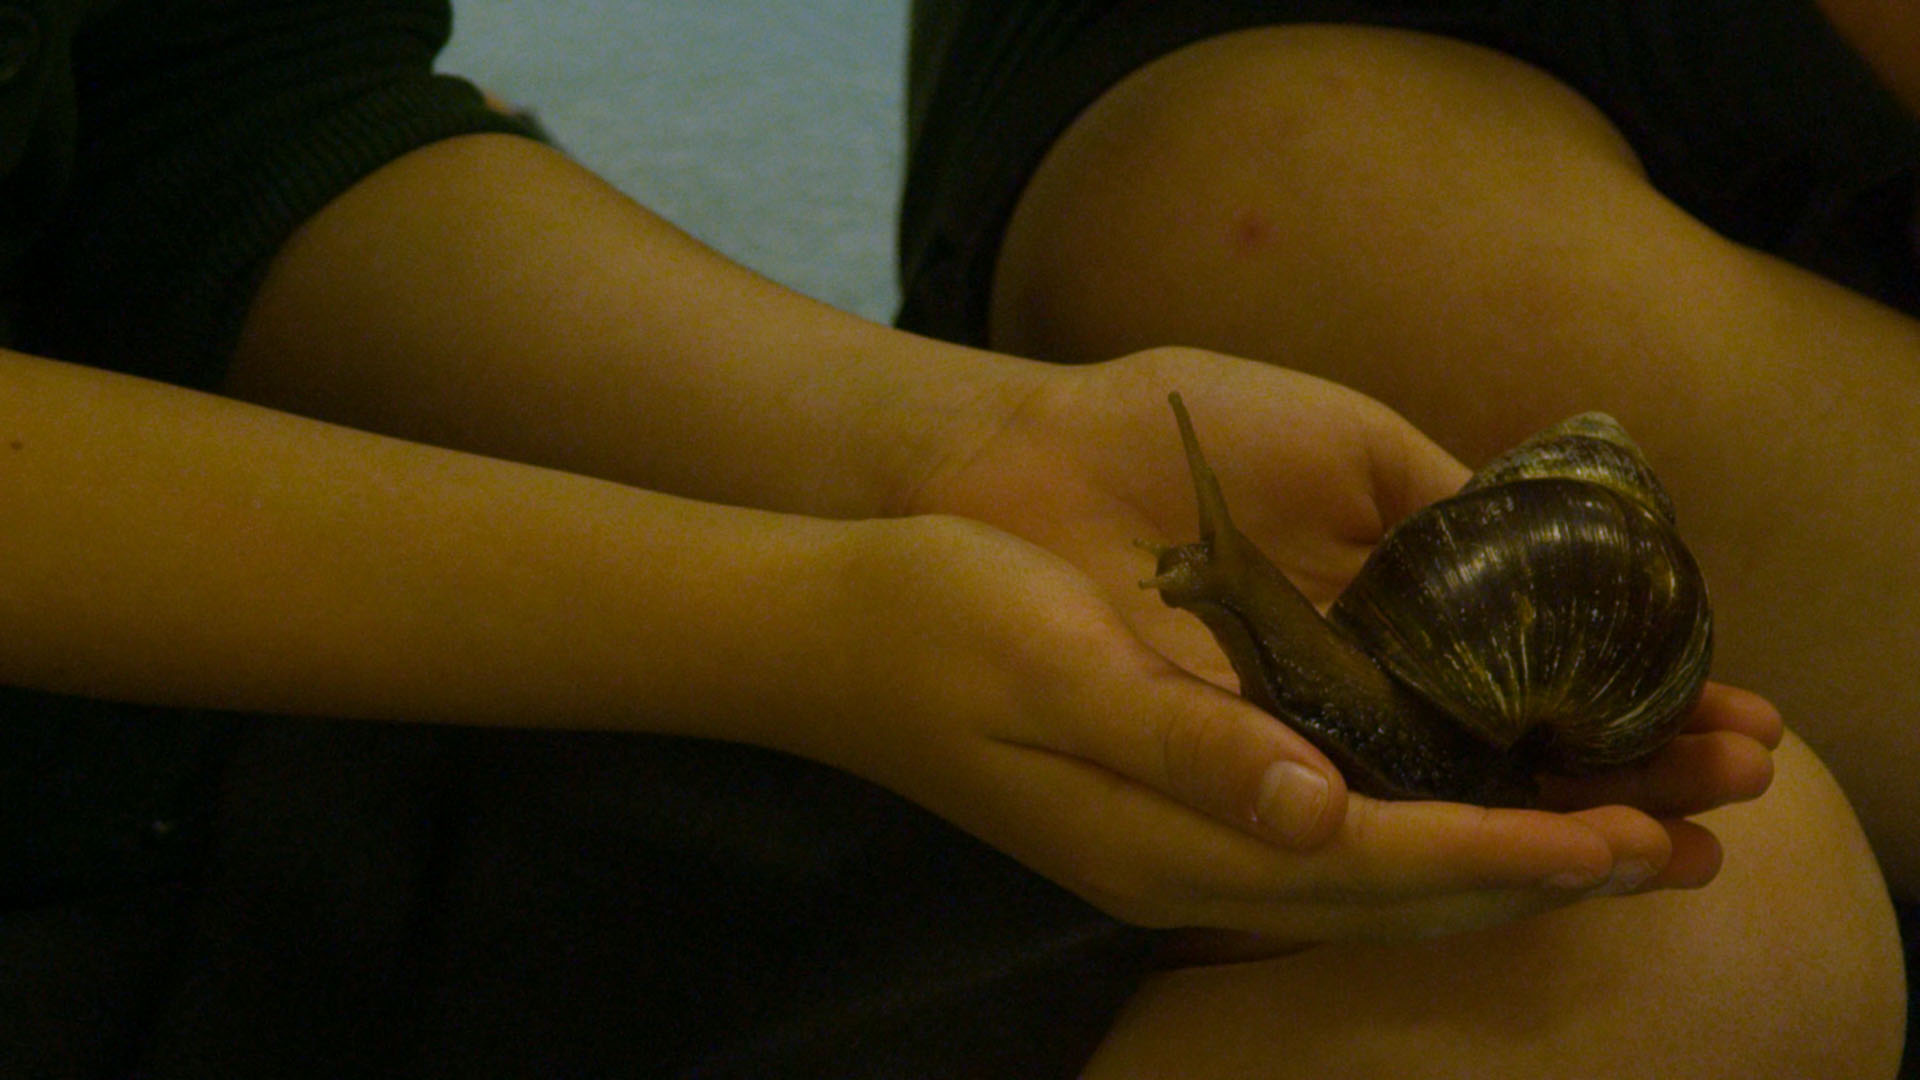 School children holding large snail